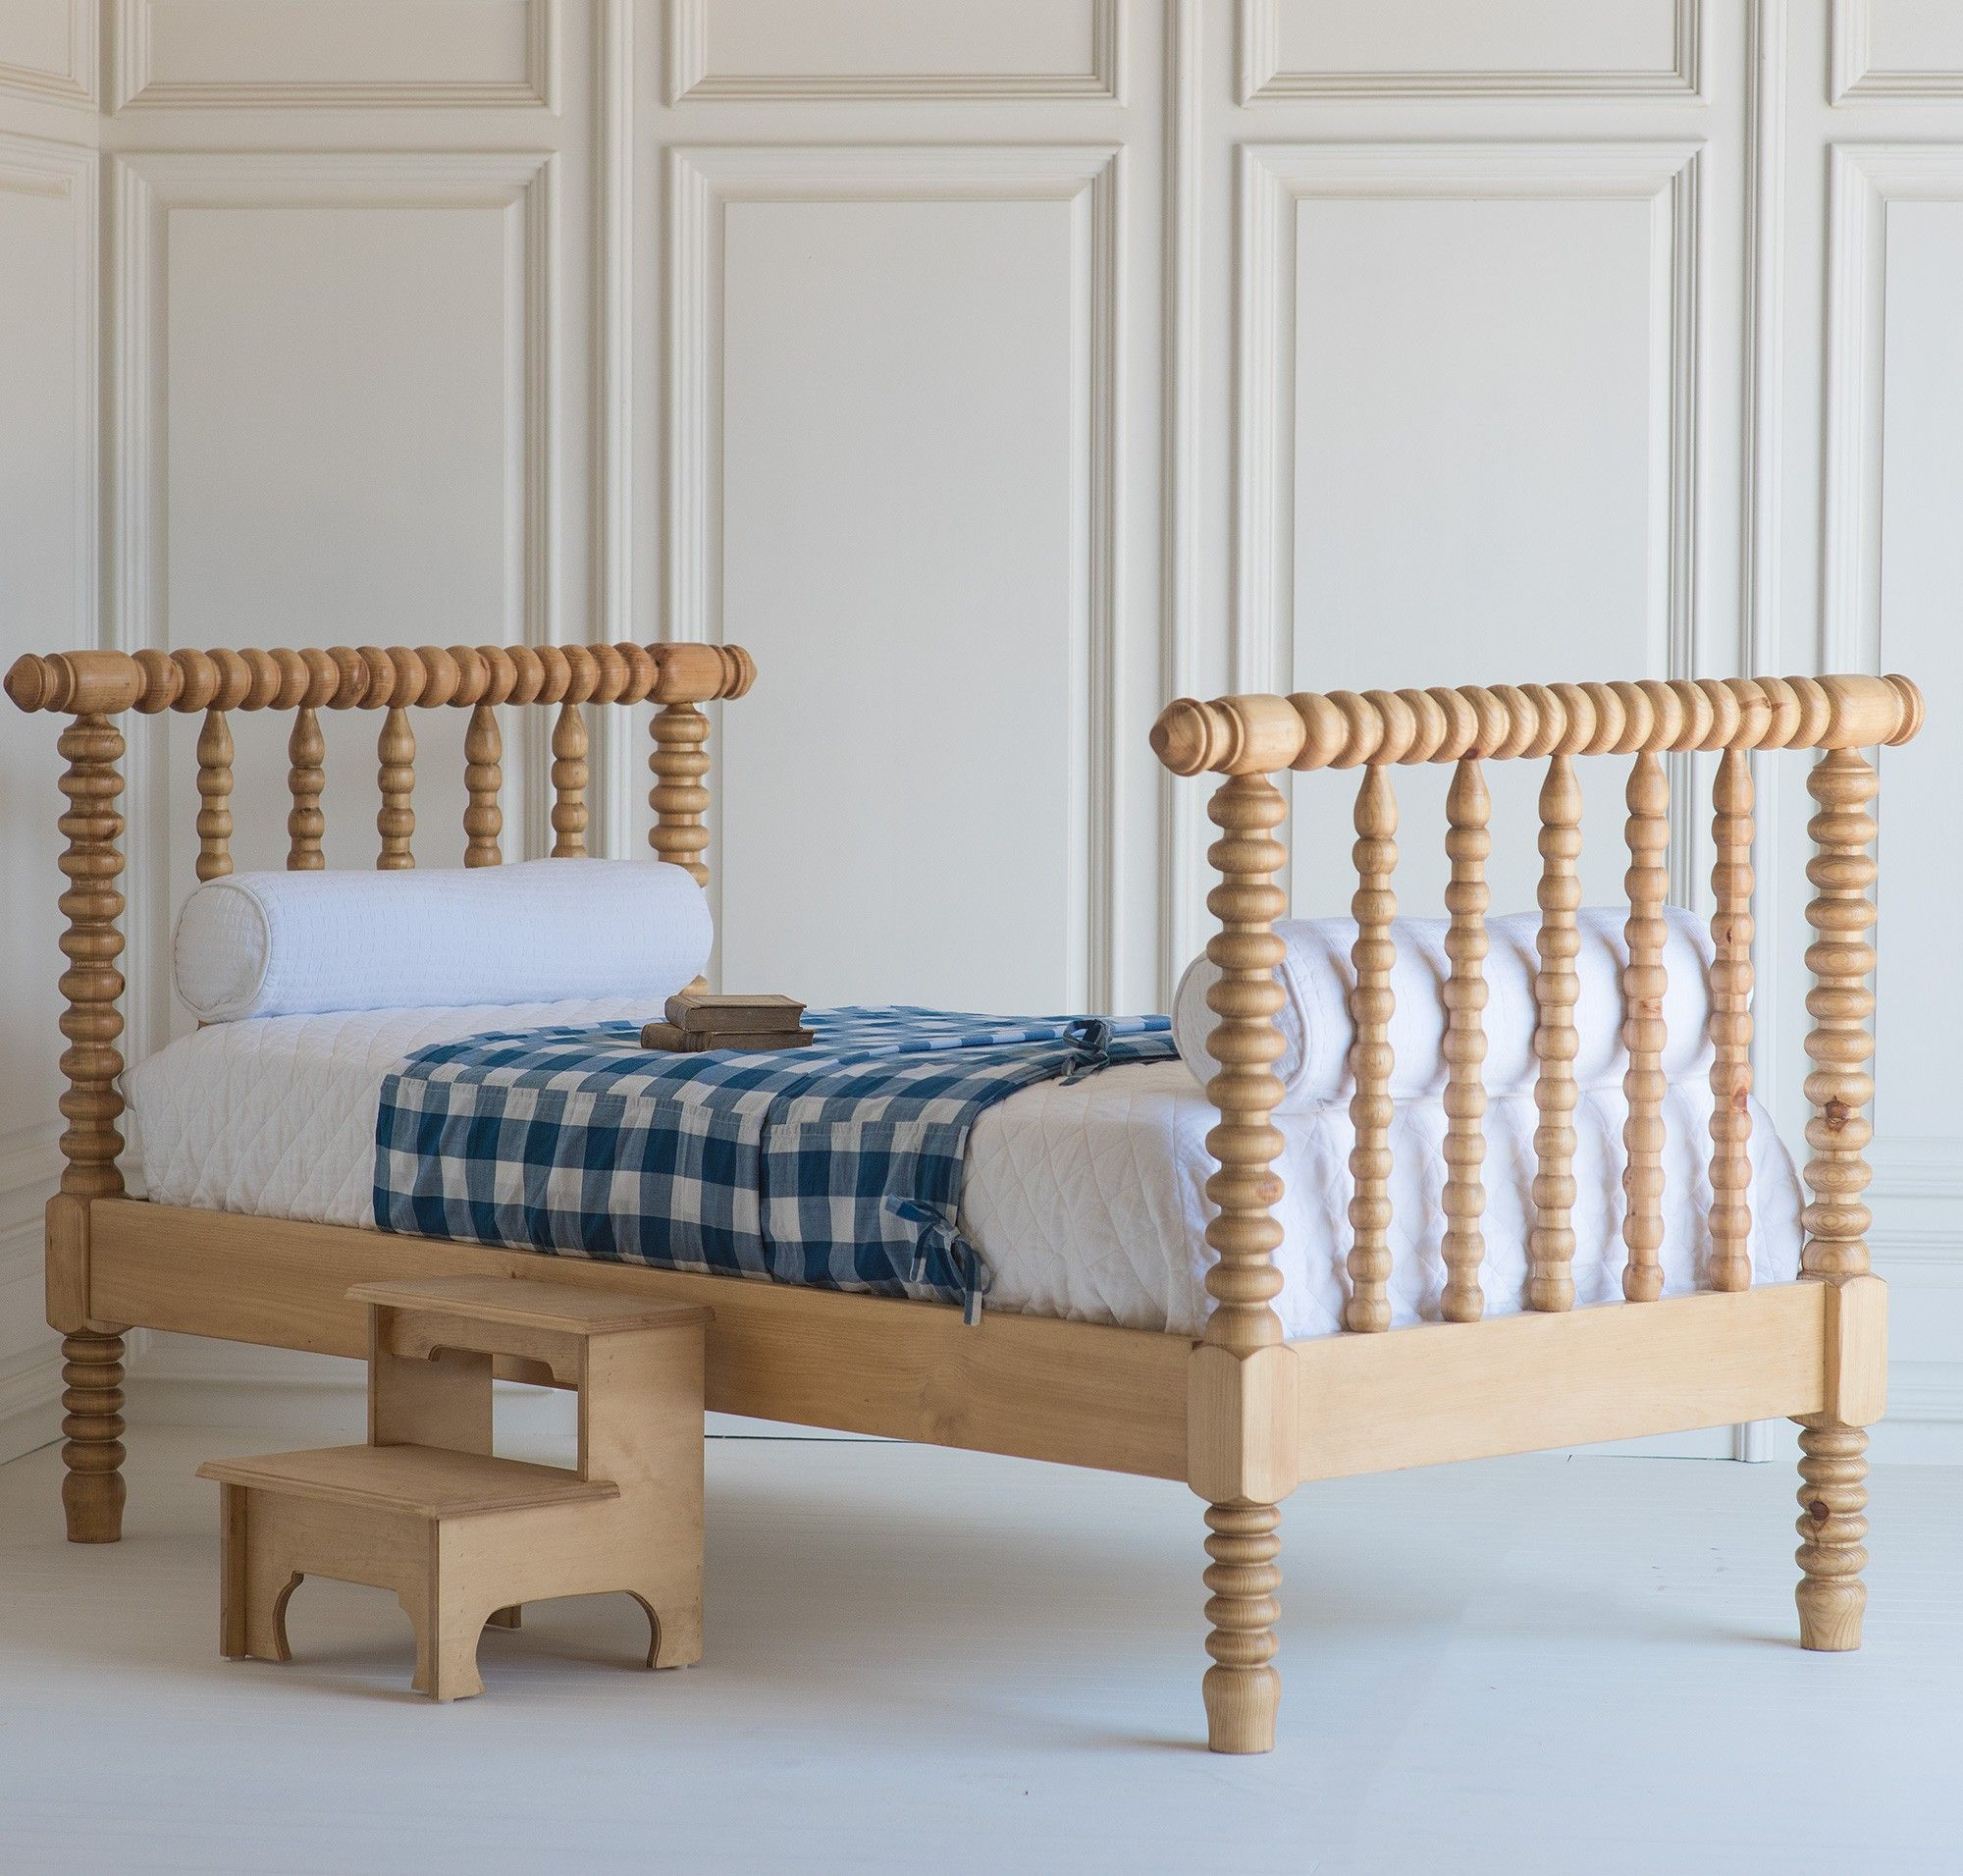 Our Artisan Spindle Day Bed by The Beautiful Bed Company